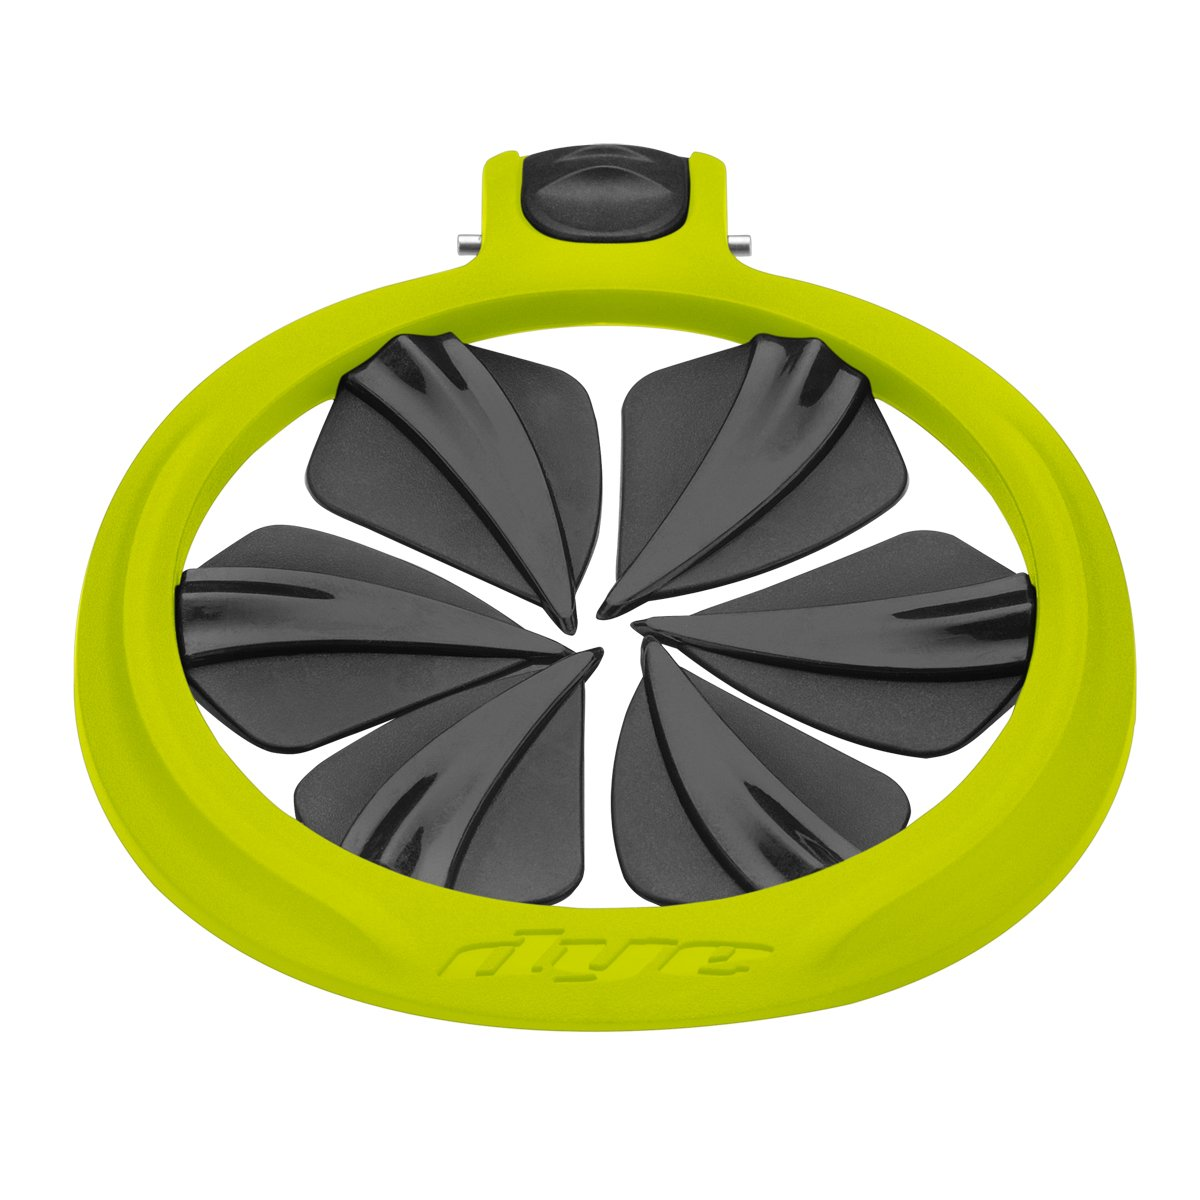 Dye Paintball Rotor R2 Quick Feed Accessory (Lime) by Dye